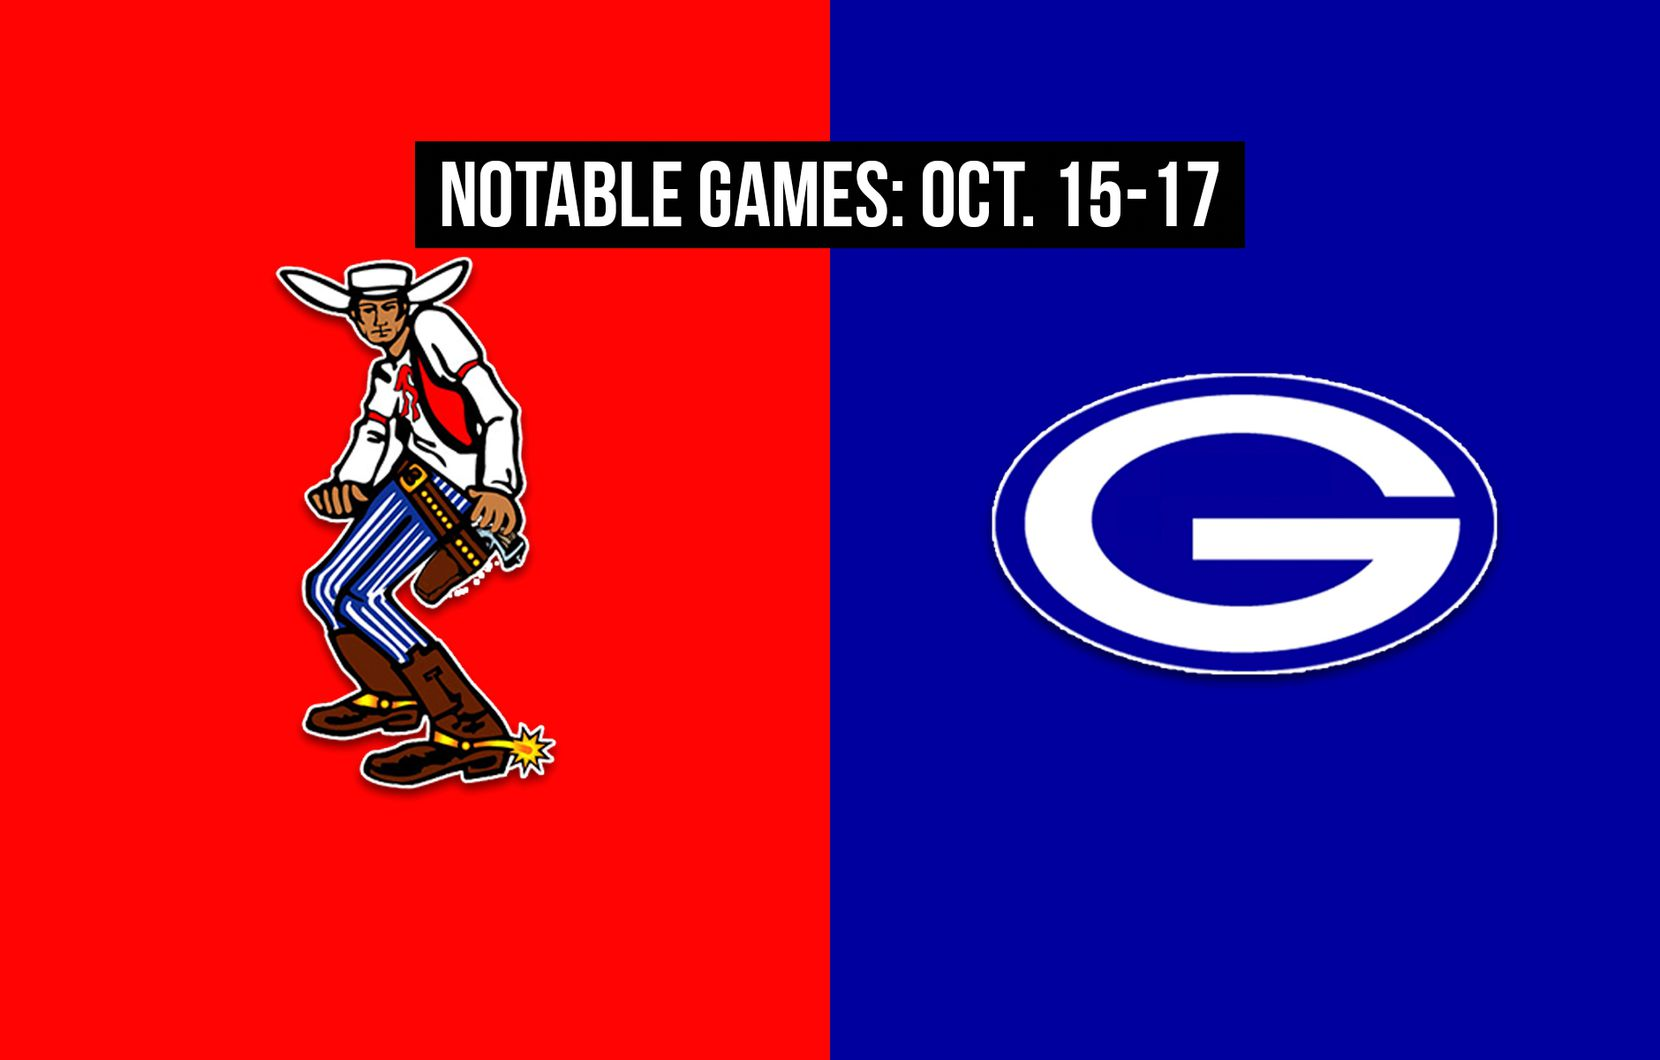 Notable games for the week of Oct. 15-17 of the 2020 season: Arlington Sam Houston vs. Grand Prairie.